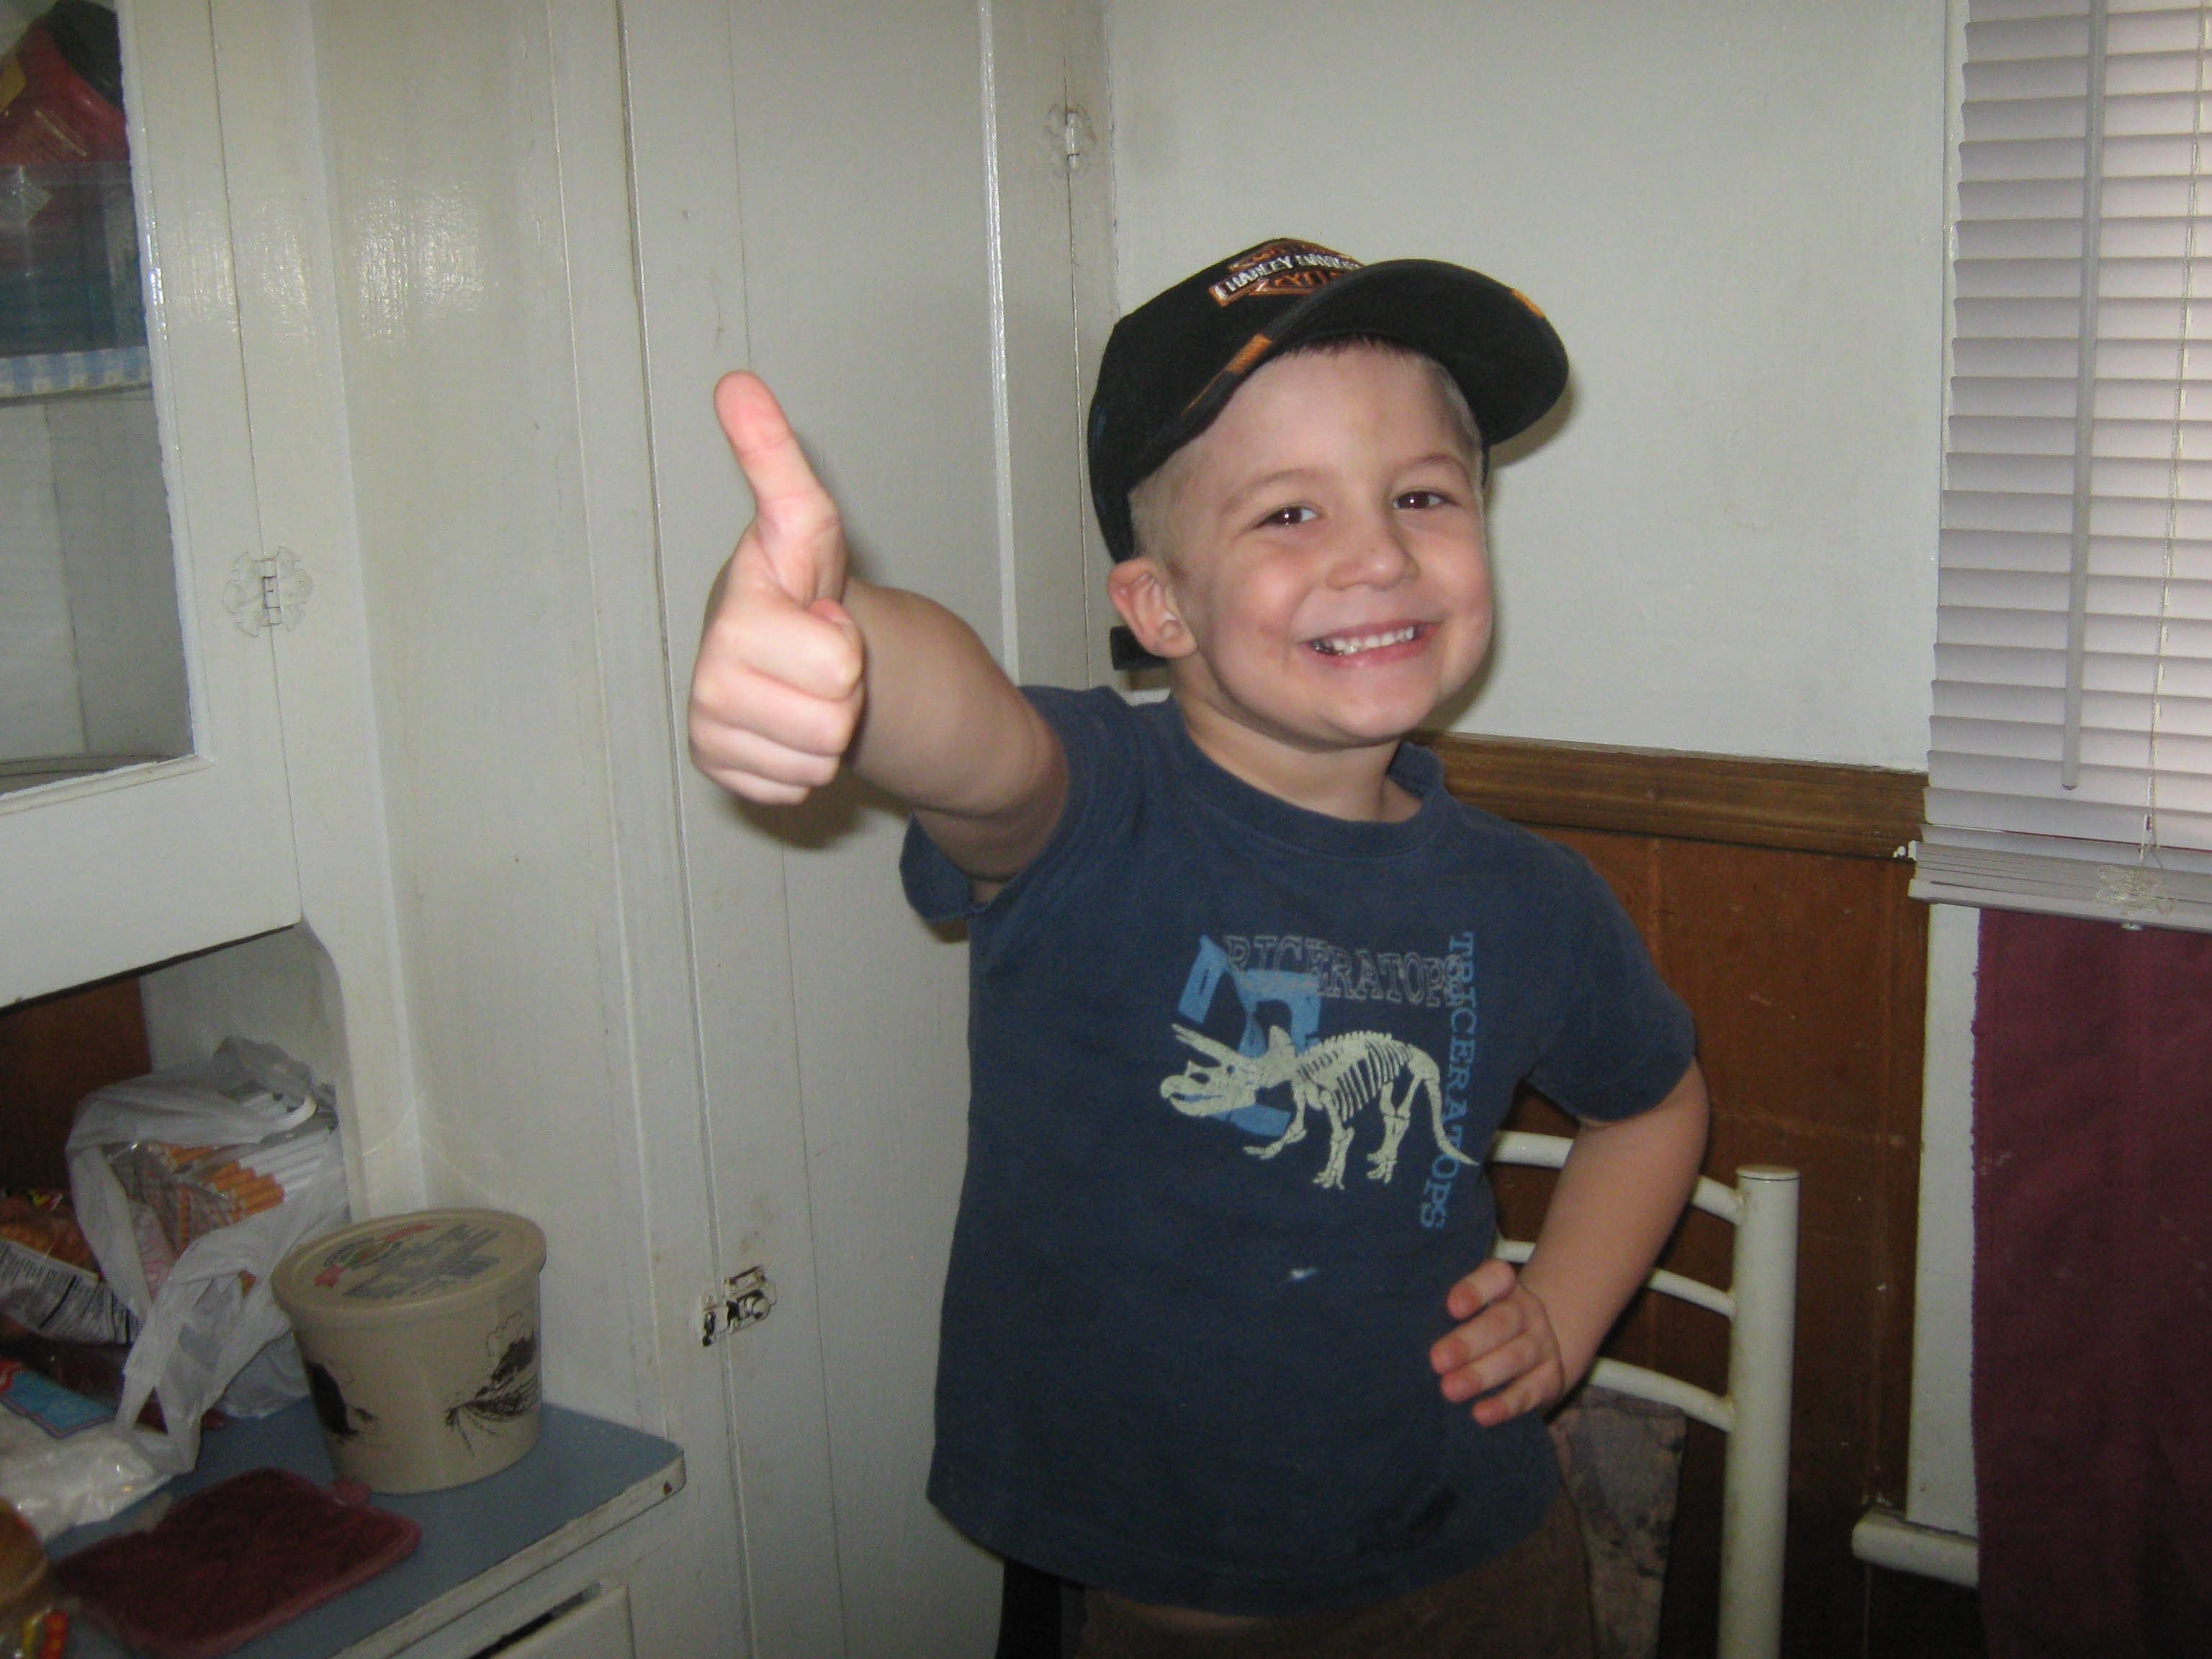 Five-year-old Eain Brooks was beaten to death despite multiple reports that he was being abused.